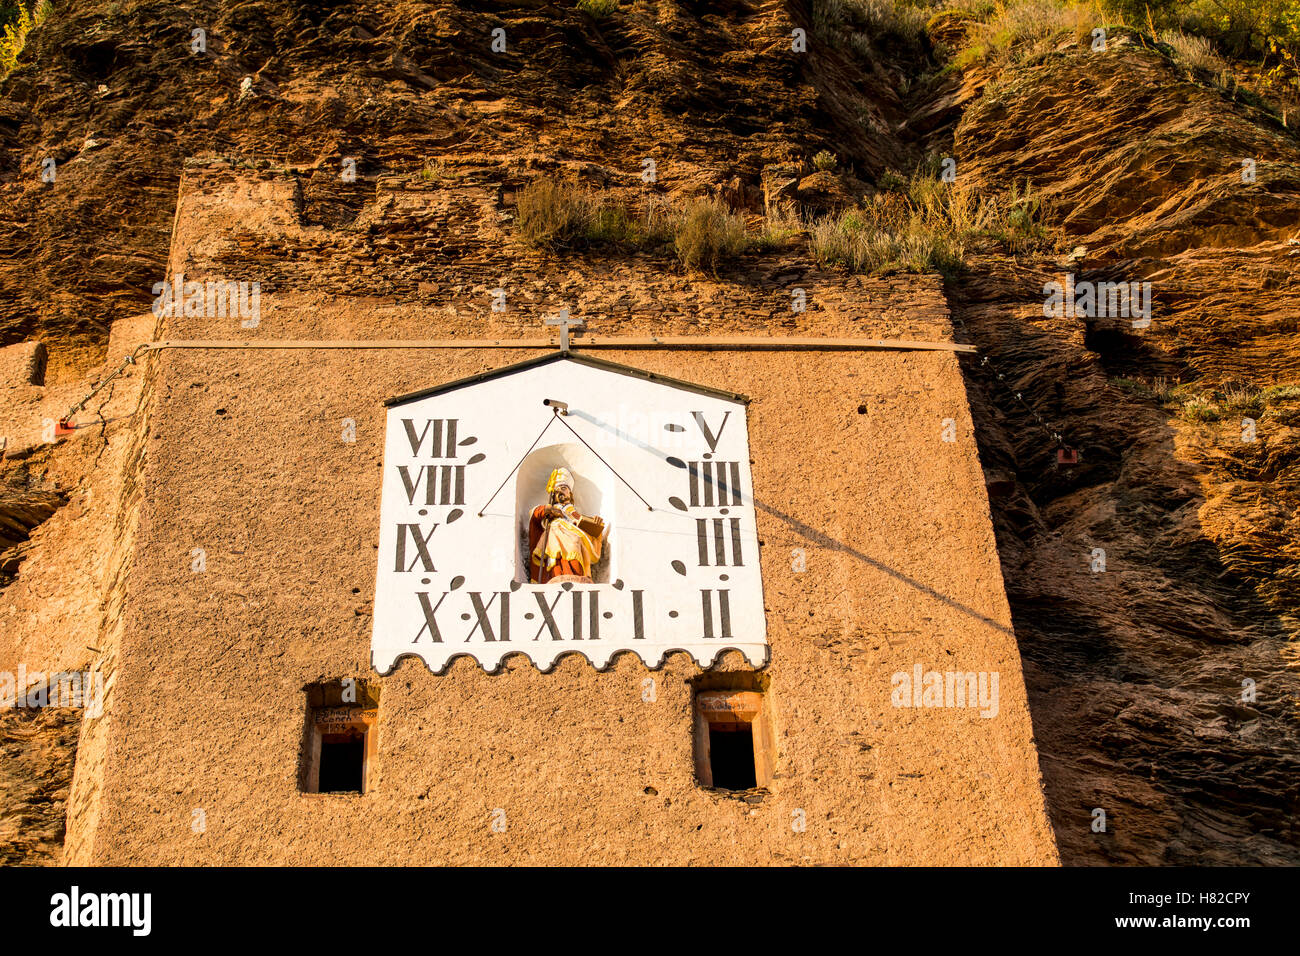 Moselle Valley region, Germany, Sundial in a vineyard, - Stock Image